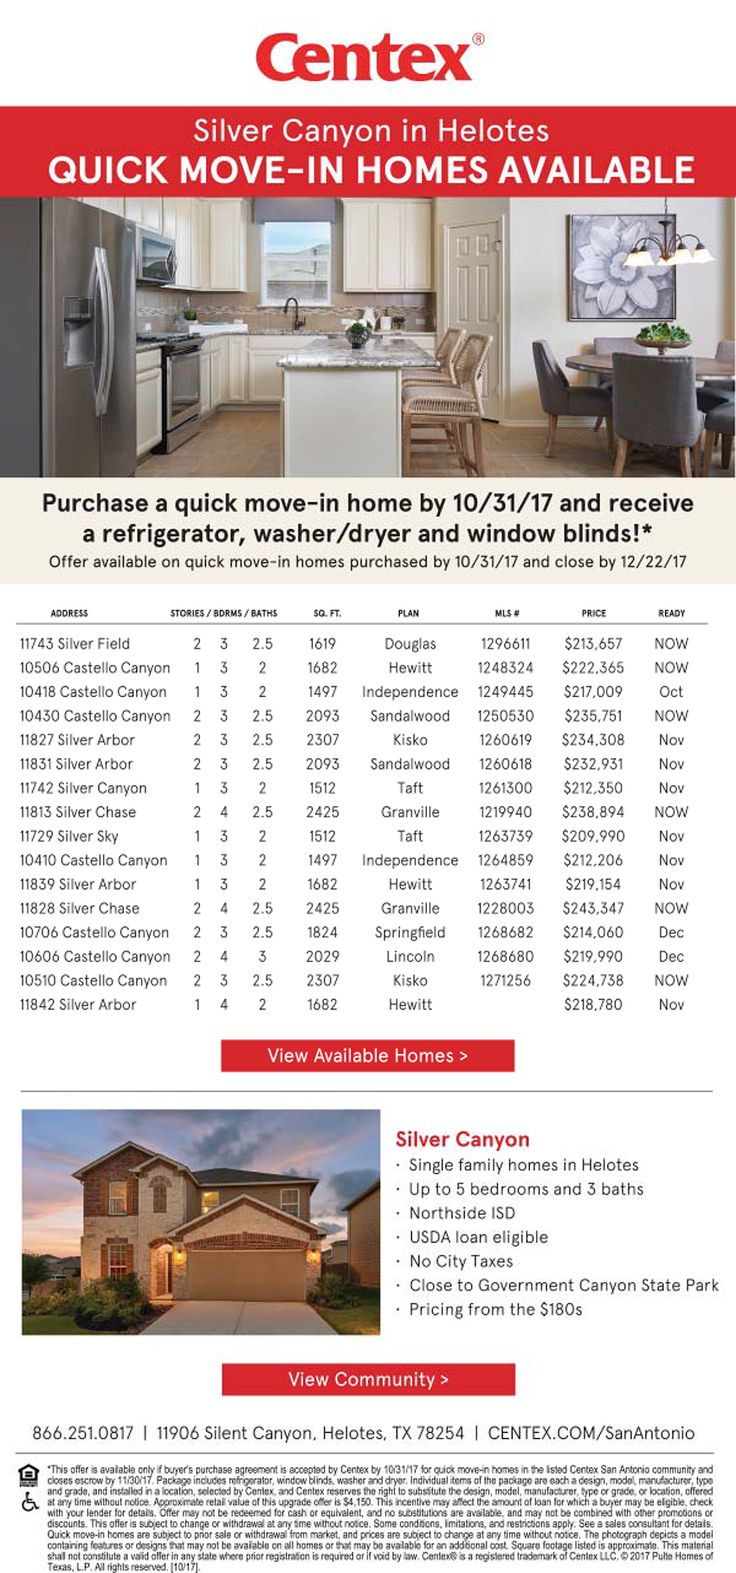 New Homes for Sale in Helotes, Texas  Limited Time Move-In Ready Package at Silver Canyon!  Quick Move-In Homes |  Receive Refrigerator, Washer/Dryer & Window Blinds  |  Single Family Homes  |  Up to 5 Bedrooms & 3 Baths  |  USDA Loan Eligible  |   No City Taxes  | 20 miles Northwest of Downtown San Antonio   https://www.centex.com/homes/texas/the-san-antonio-area/helotes/silver-canyon-50480#QMI